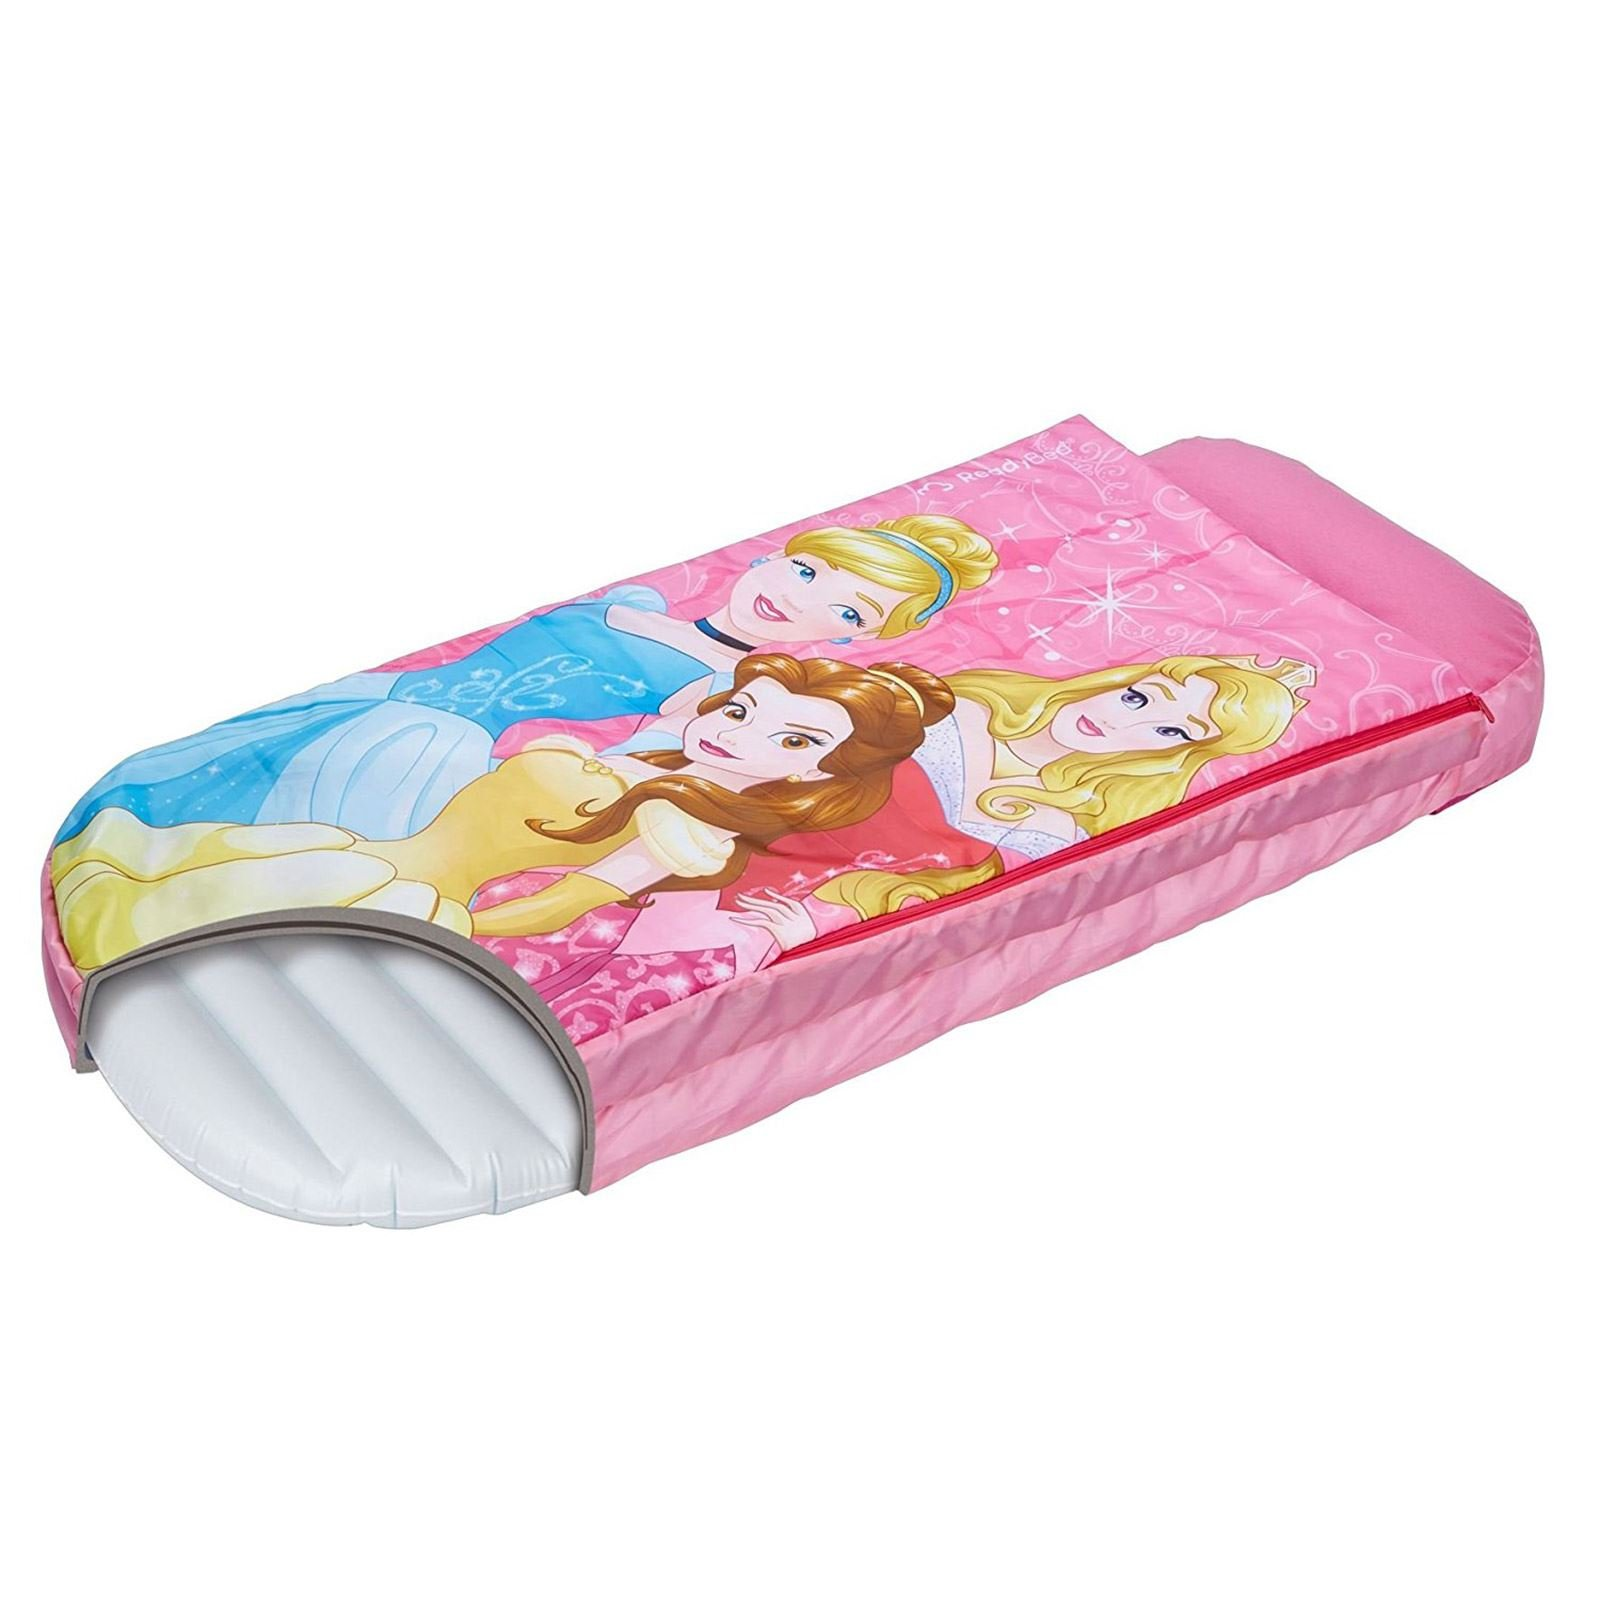 Disney Princess Junior Ready Bed All-in-One Sleepover Solution